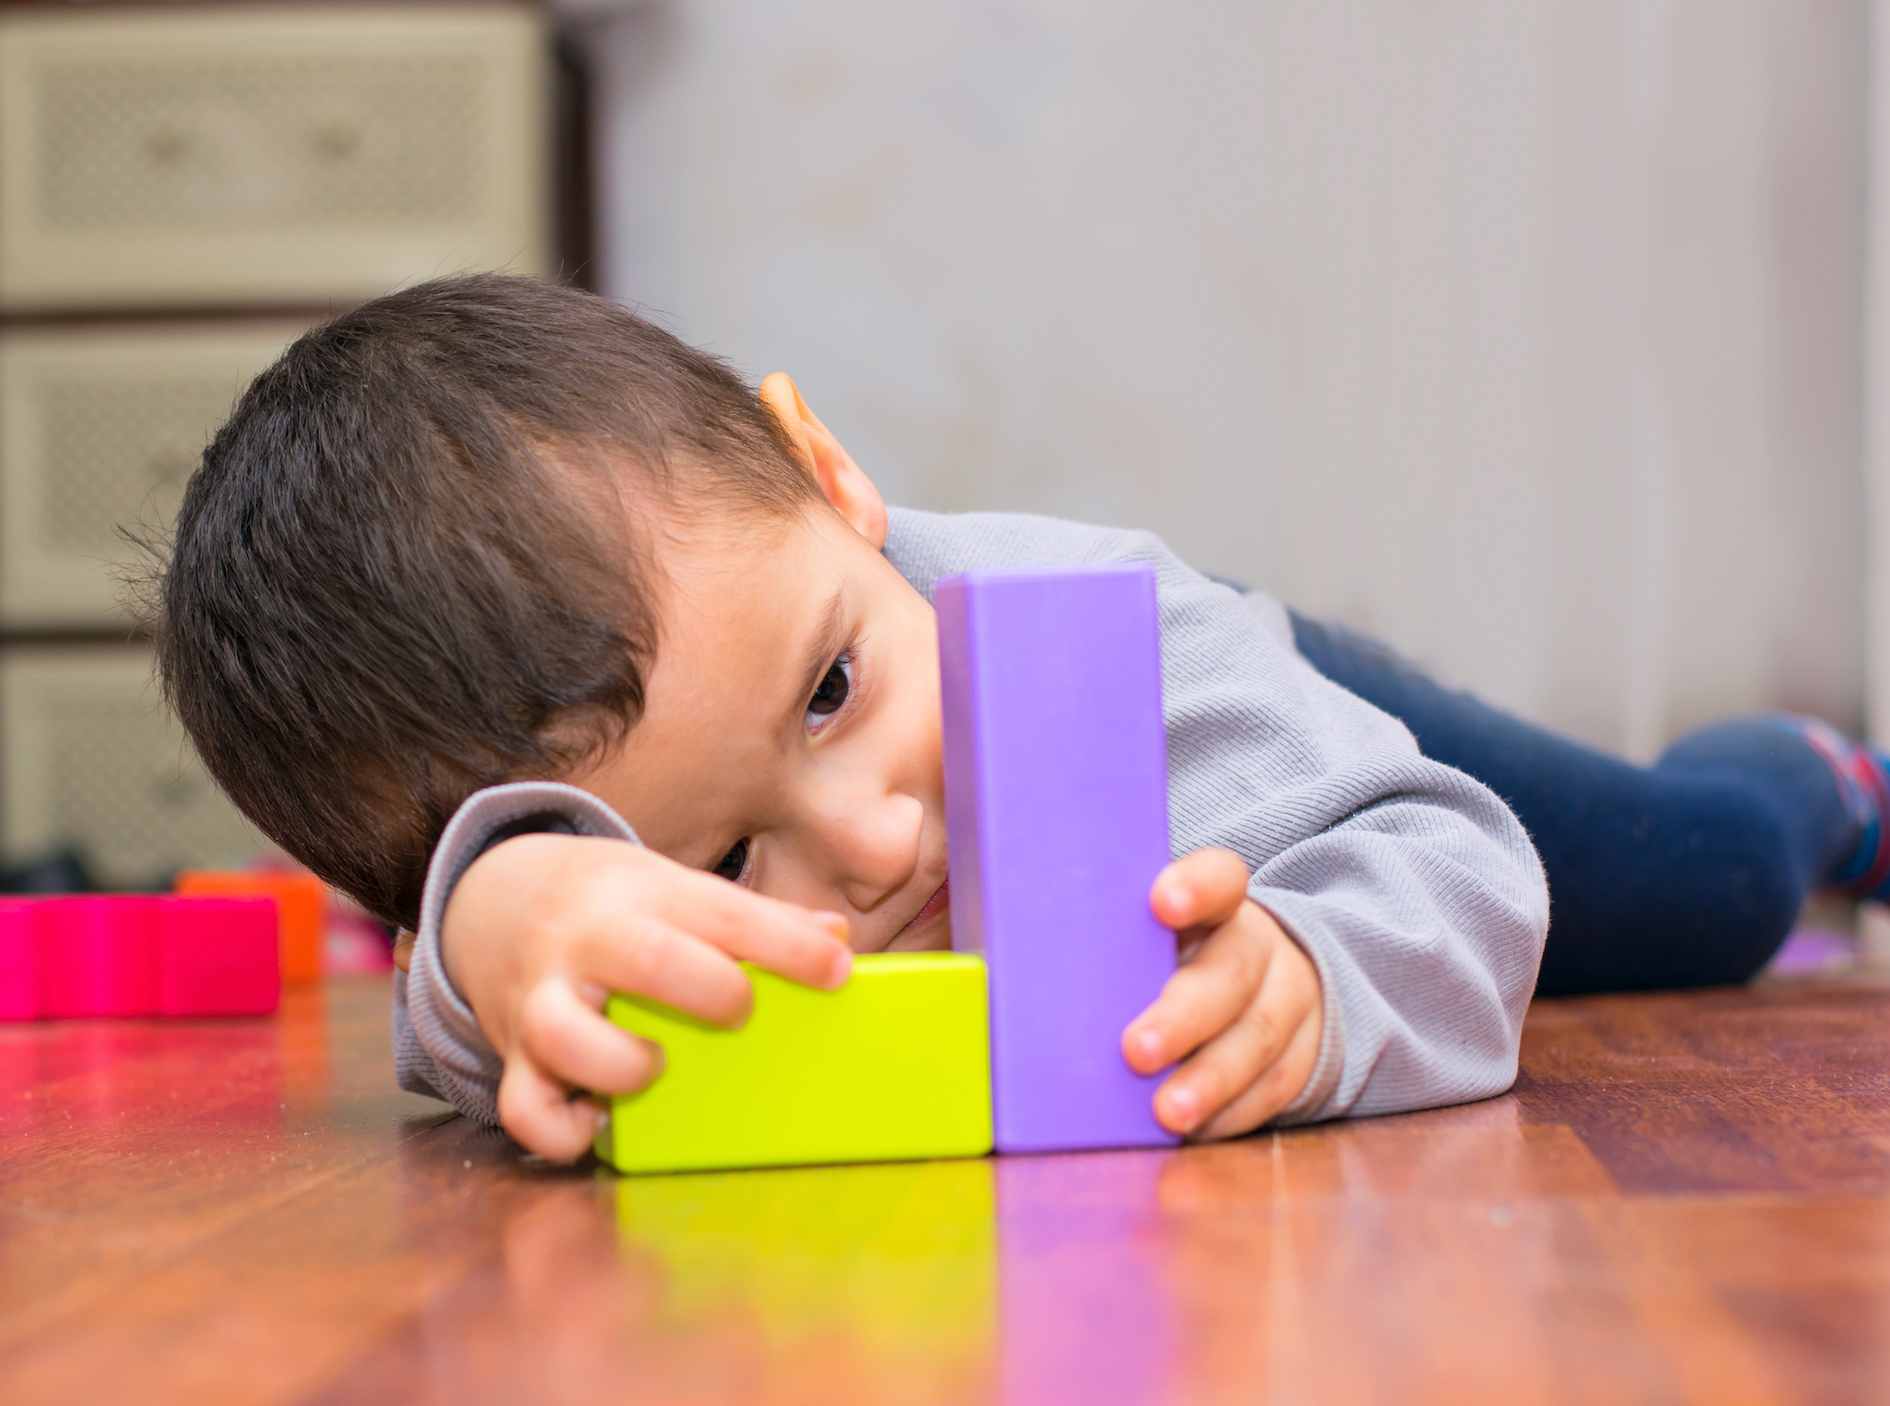 The hormone oxytocin improved social behavior in children with autism, according to a new study by Stanford University Medical Center.